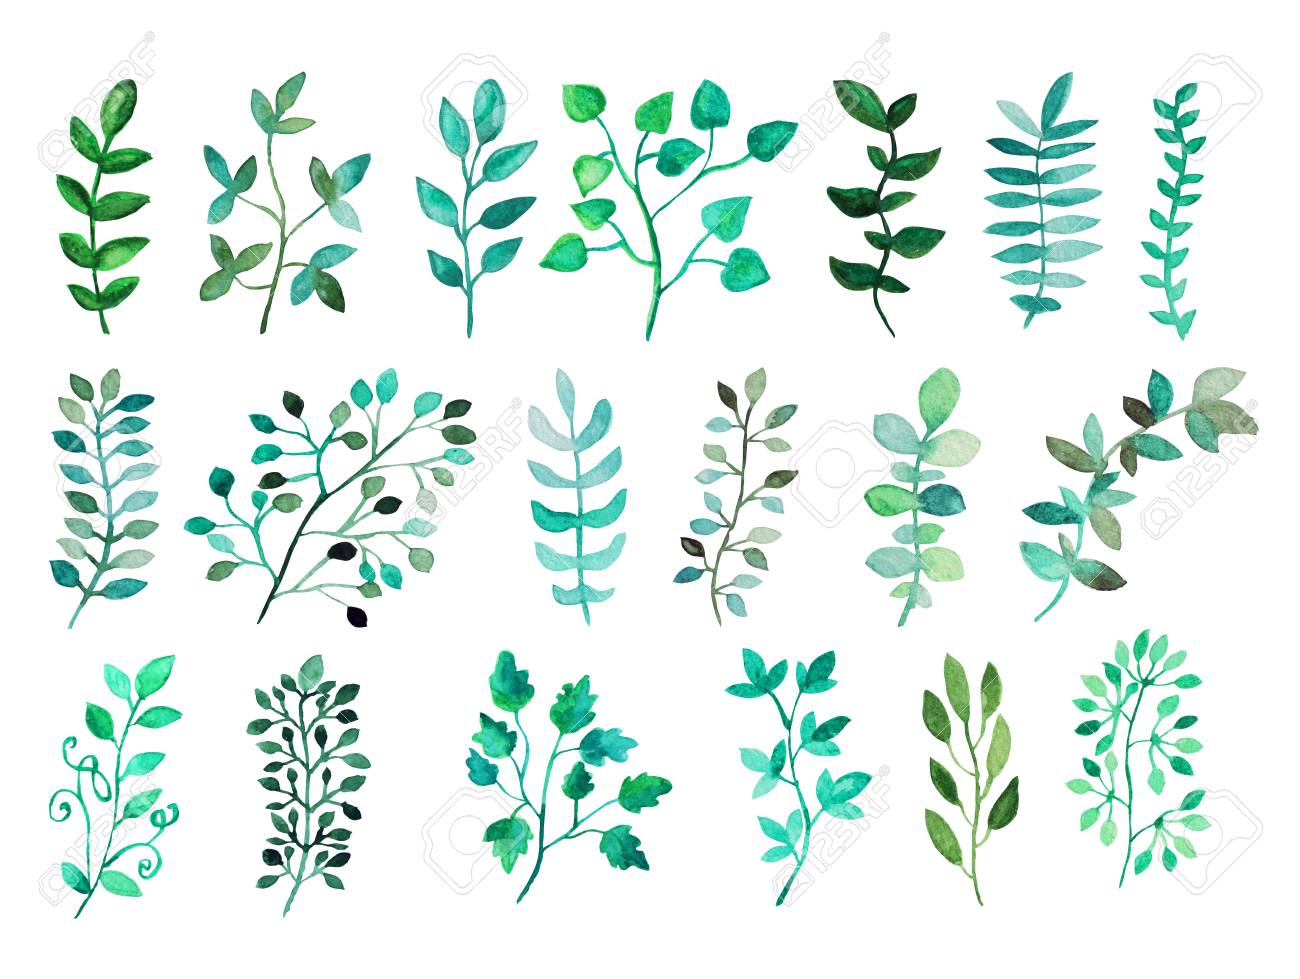 Decorative Watercolor Leaves Clipart, Design Elements. Can Be ...